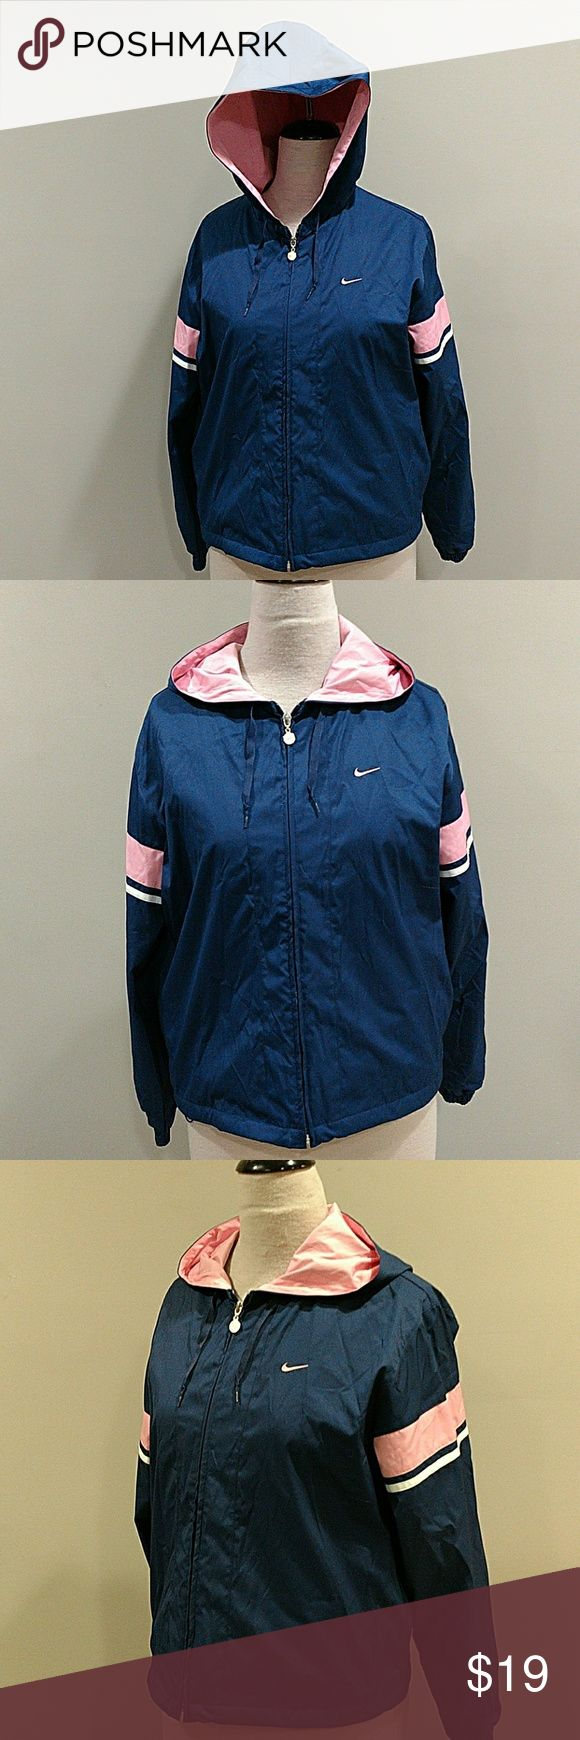 NIKE COAT SIDE XL EXCELLENT CONDITION. NO ISSUES NO STAINS ZIP UP COAT WITH GOOD. PINK AND BLUE Nike Jackets & Coats